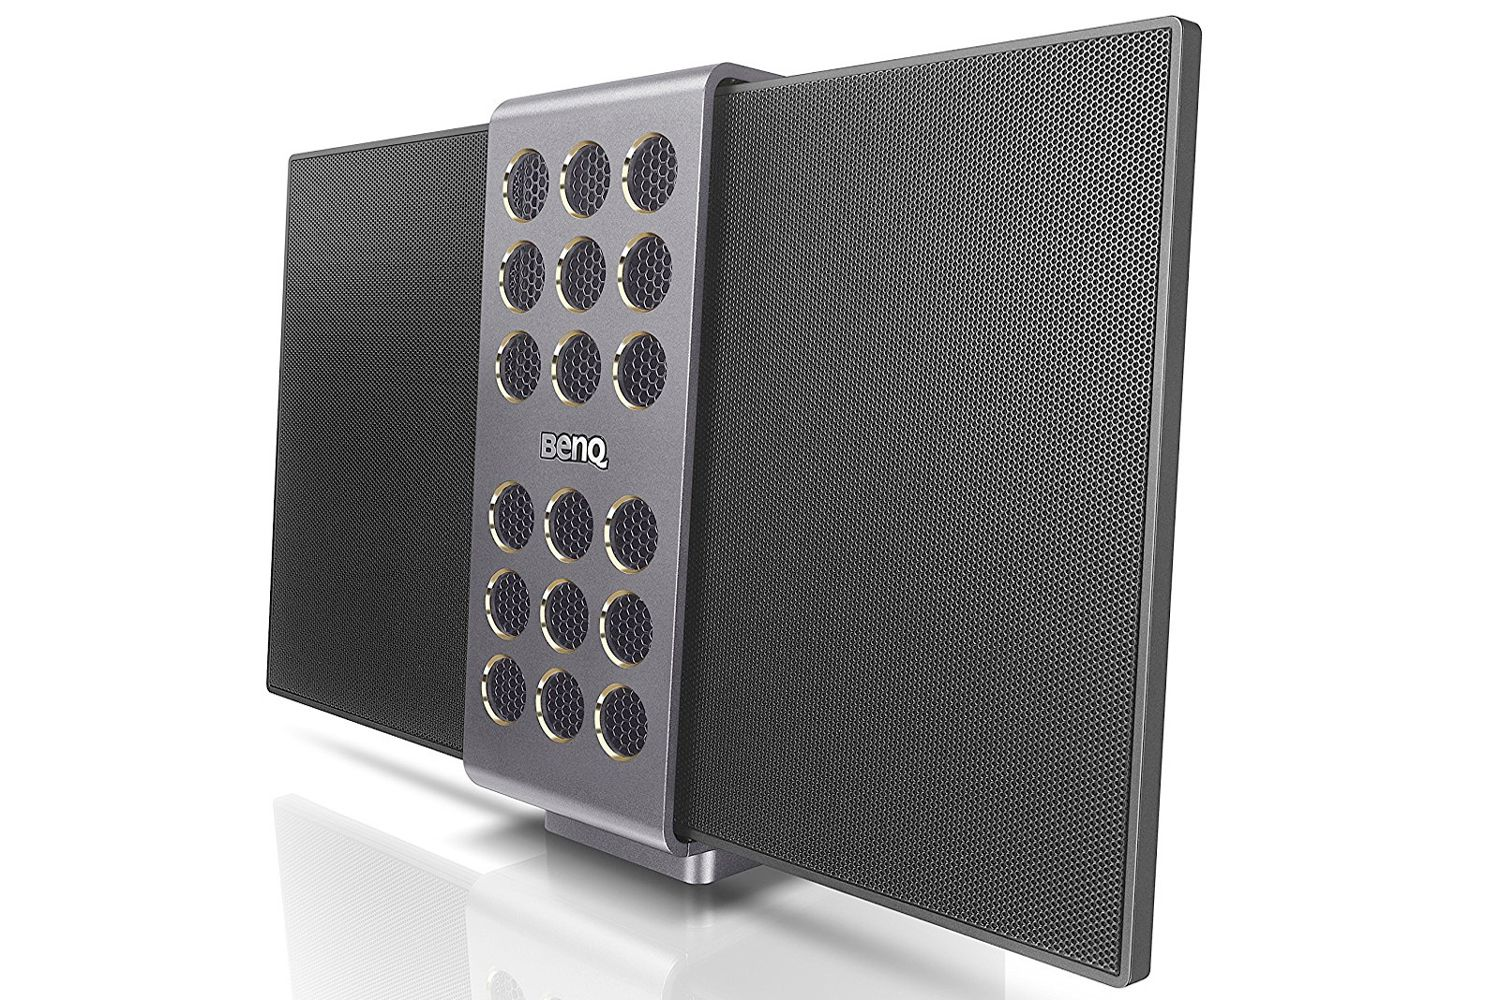 Benq Trevolo Electrostatic Speaker System Review